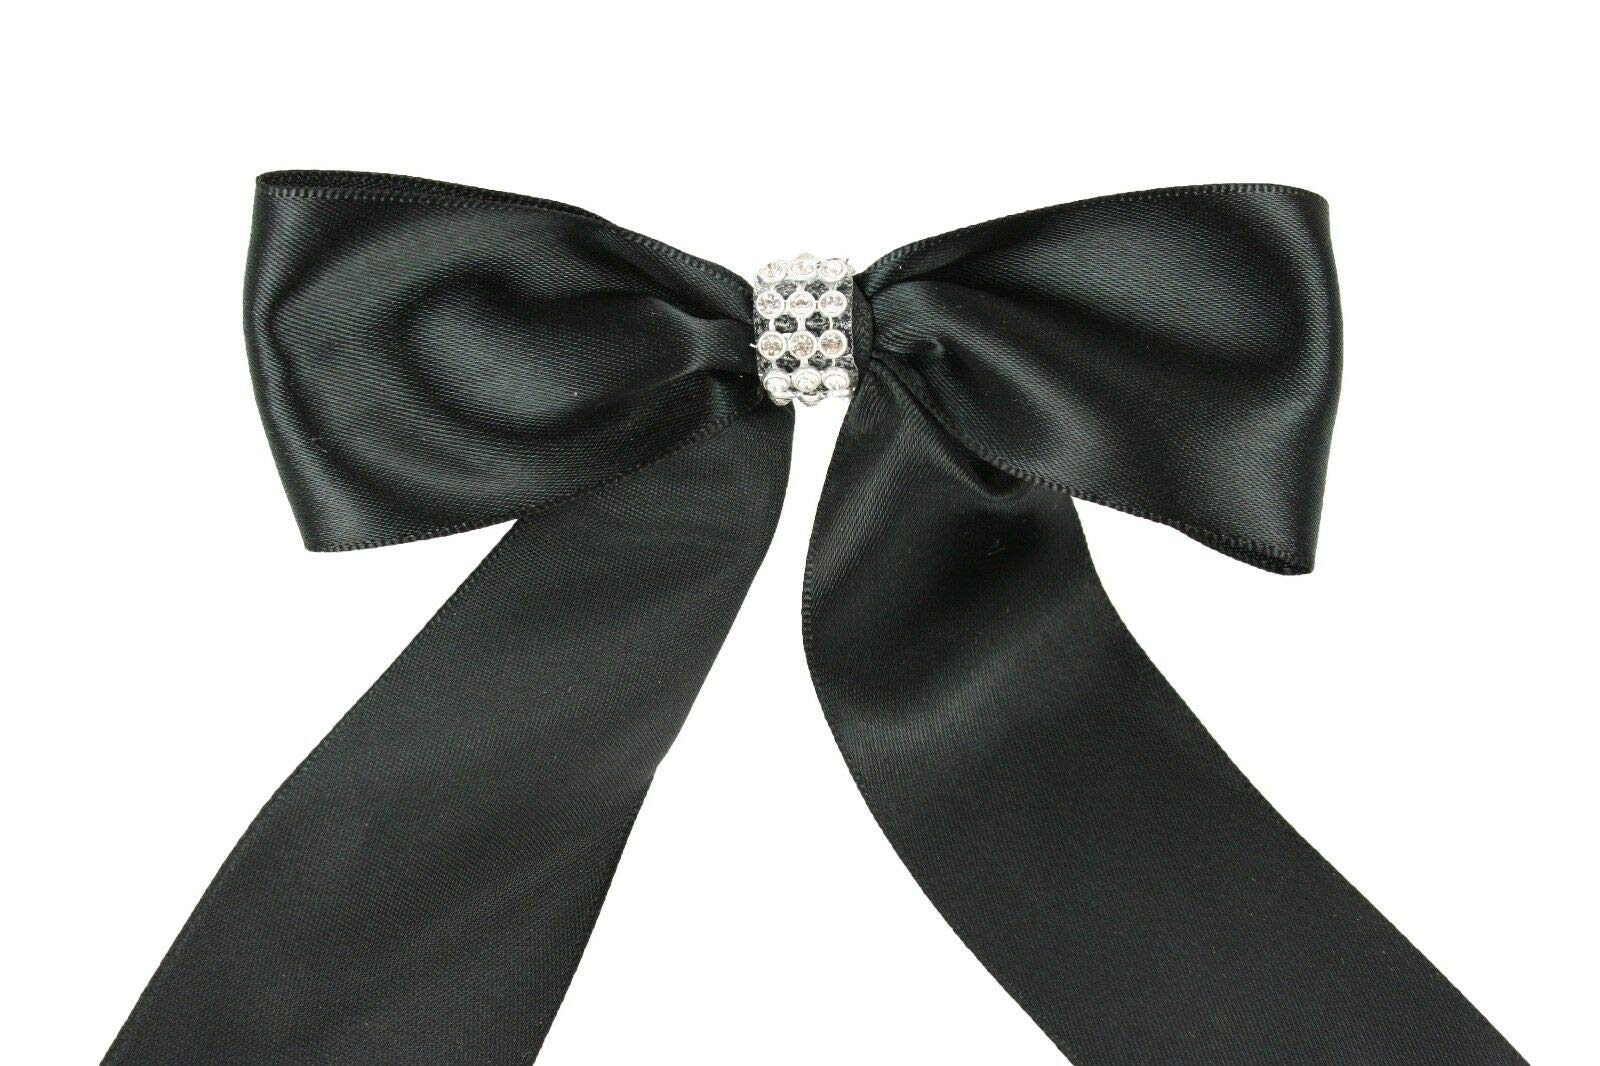 Black (Set of 10) Pre-Made 1-1/2'' Satin Bows Rhinestone Center Design with Wire Tie #DPNH